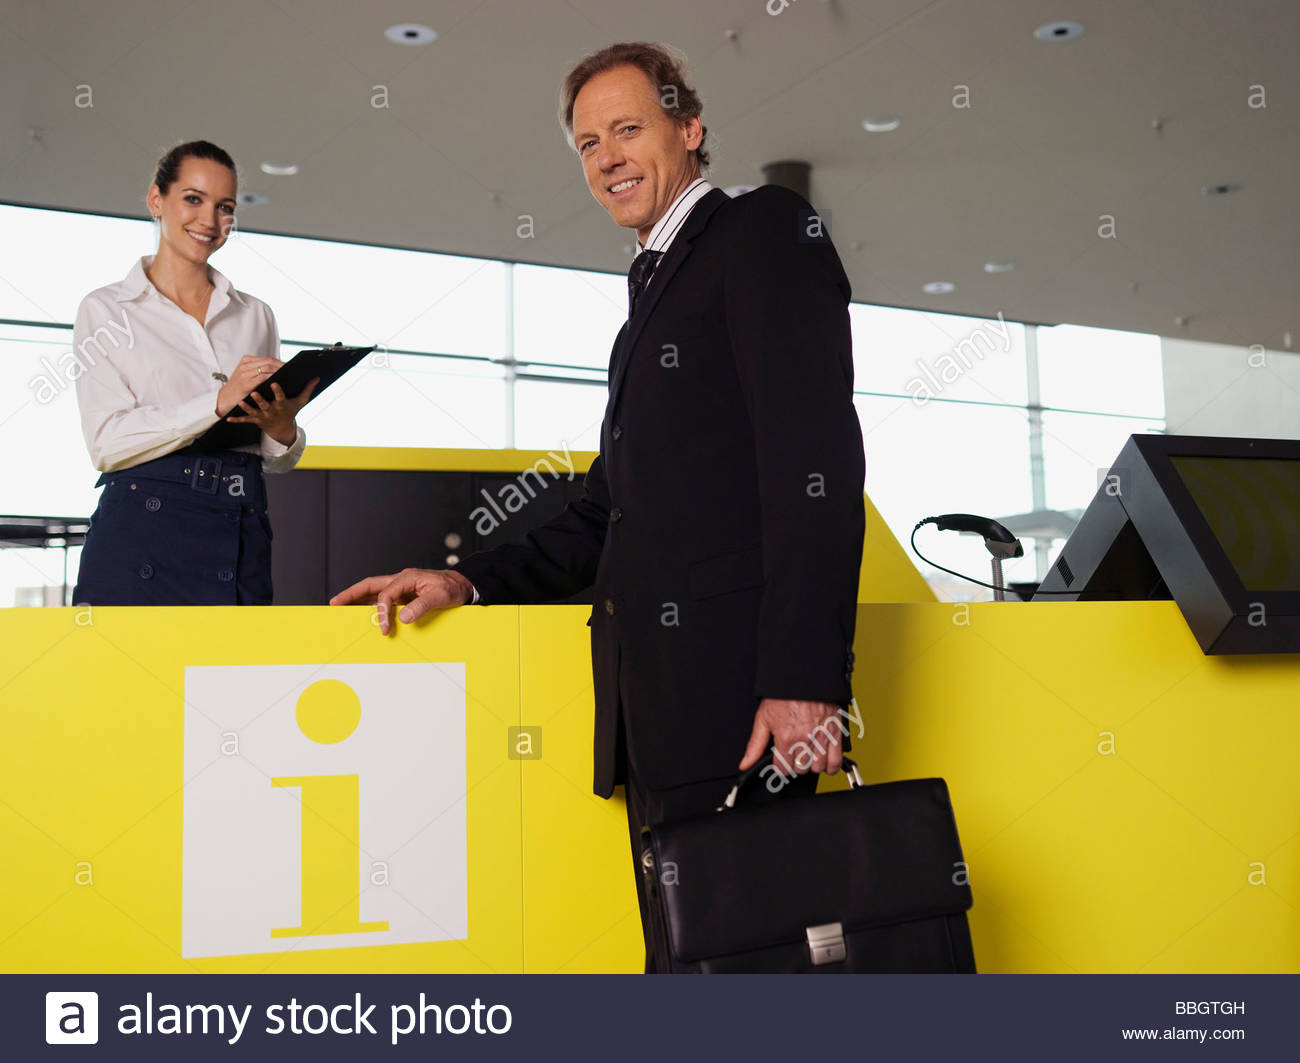 Woman at information desk helping businessman - Stock Image